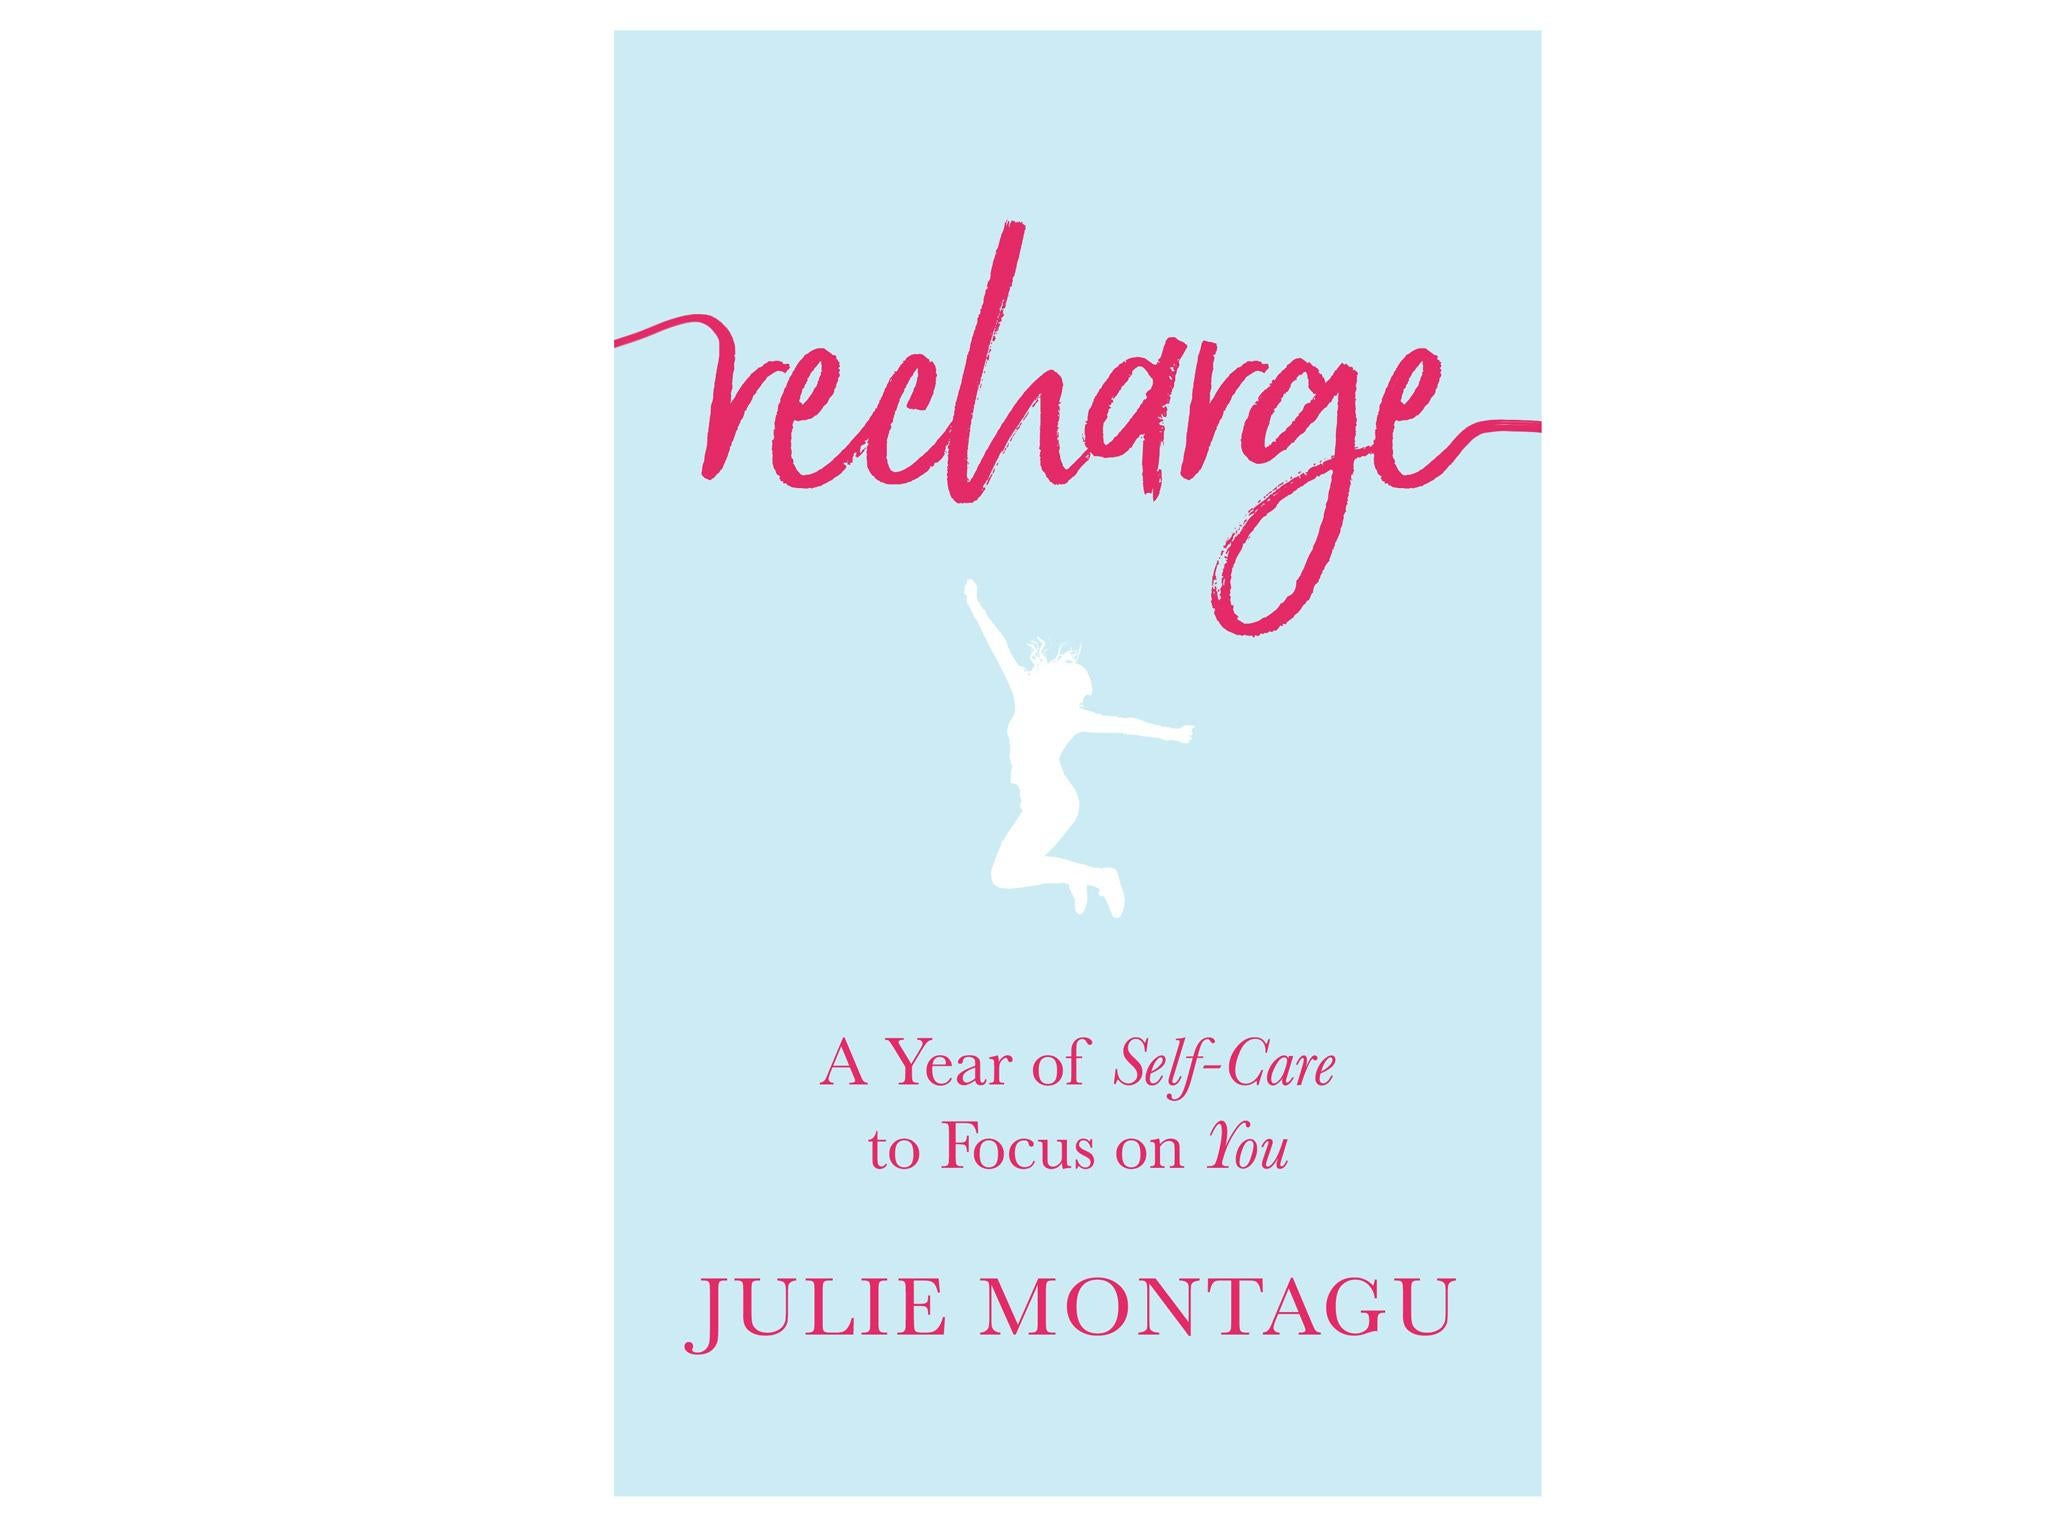 8 best self help books the independent holistic health guru julie montagu also knows how important looking after number one is and in this uplifting without being patronising book fandeluxe Image collections